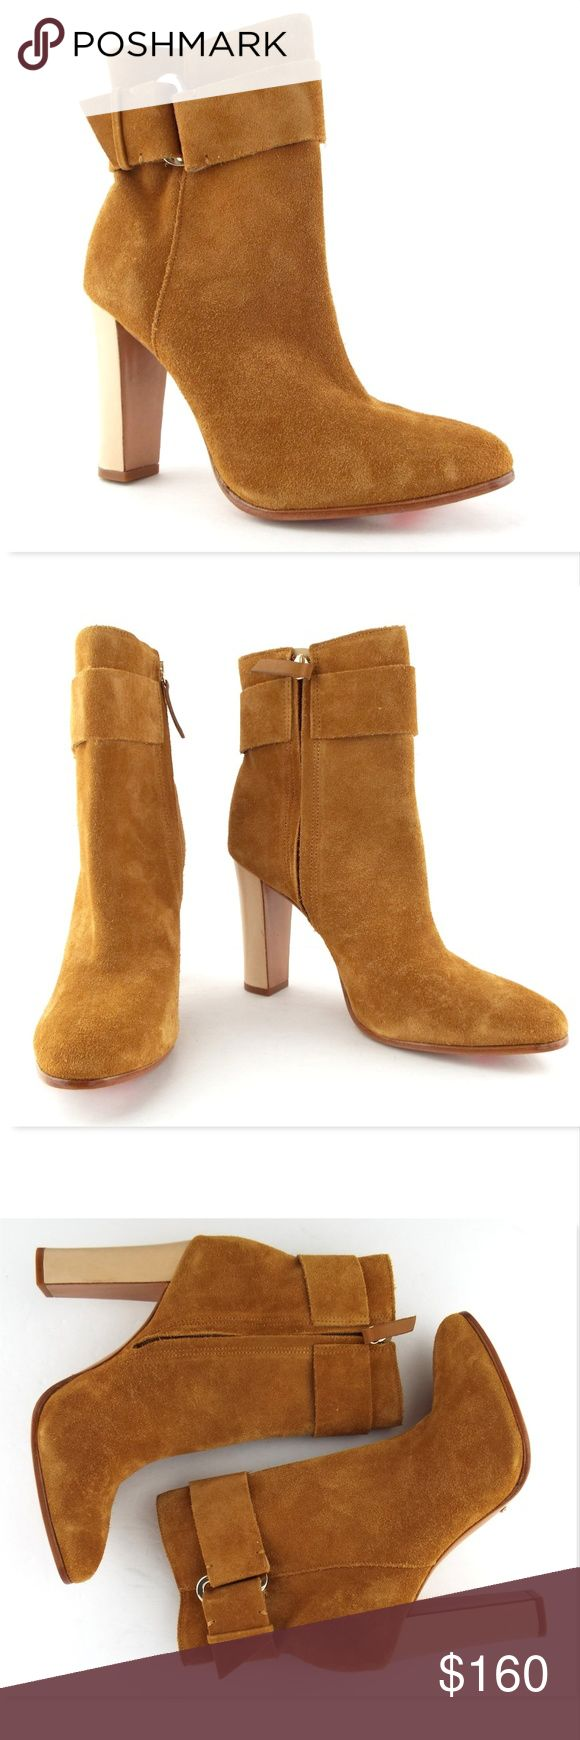 New SCHUTZ Hazel Suede Ankle Boots Booties 10 SCHUTZ 100% Authentic! Hazel Suede Ankle Boots Size 10 Medium US Made in Brazil New without box All actual photos of the item. Note a tiny minor finger nail scratch on heel. SCHUTZ Shoes Ankle Boots & Booties